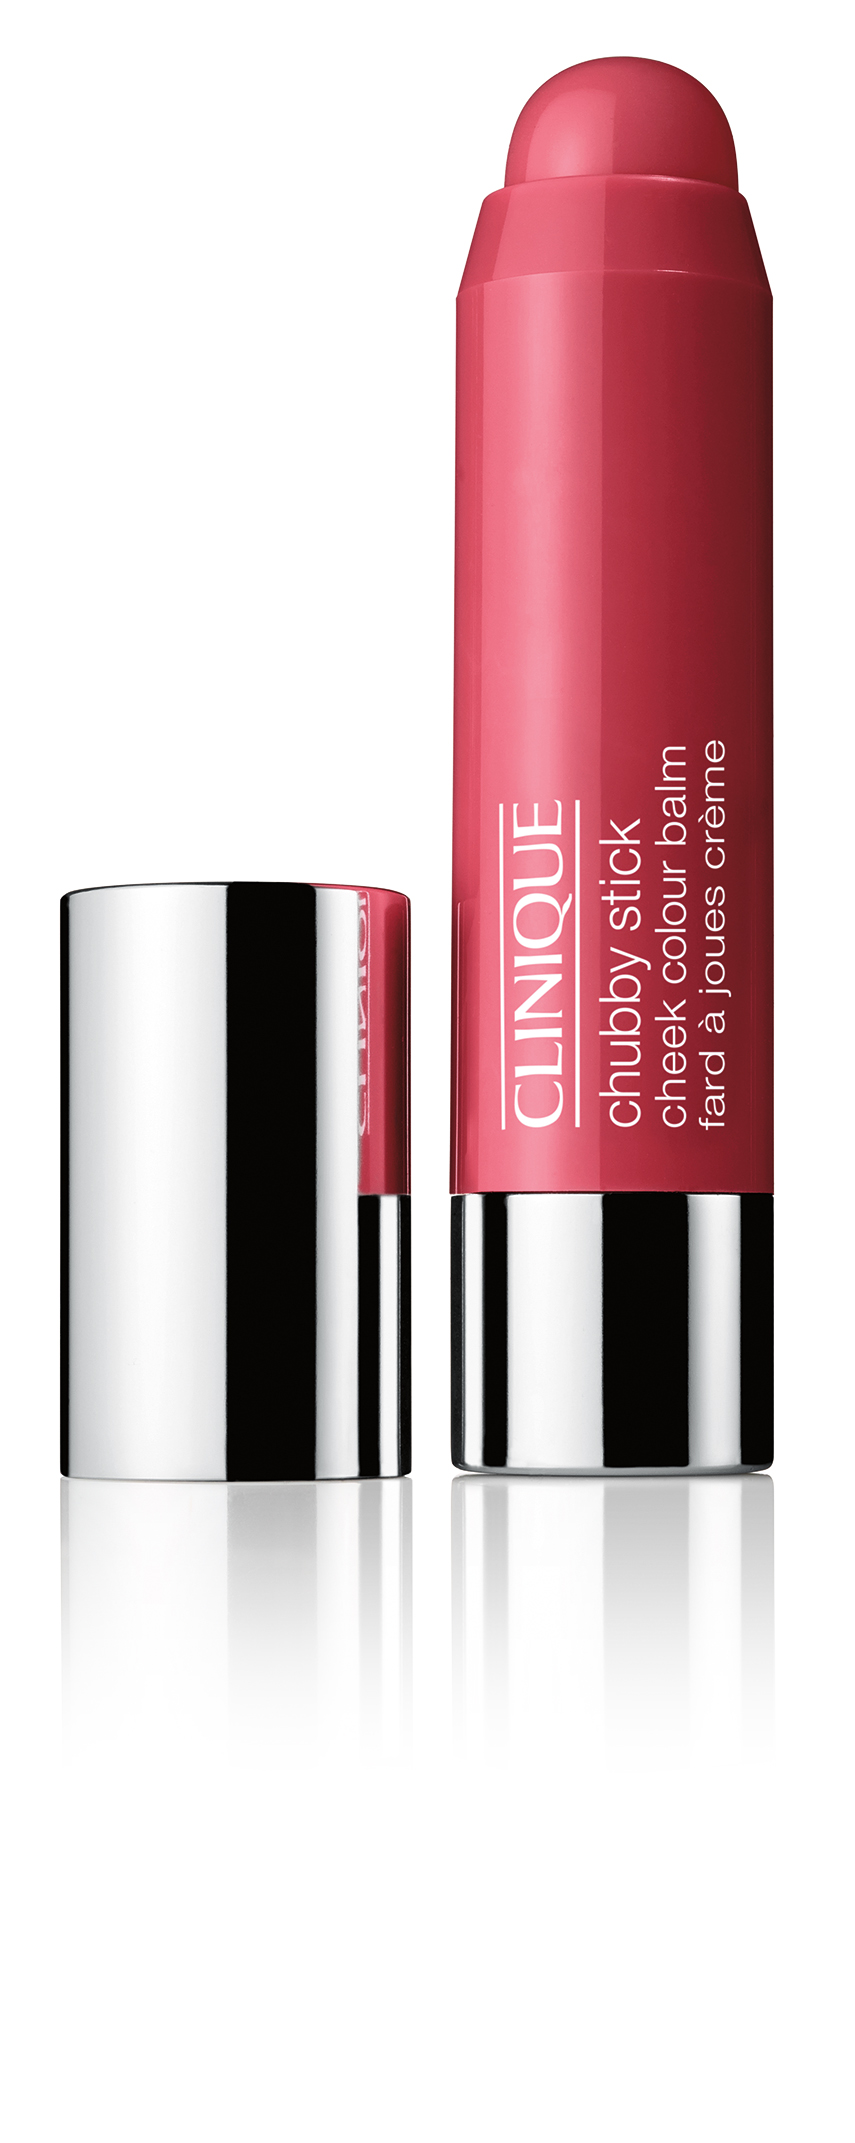 Clinique Chubby Cheek Colour Balm Roly Poly Rosy INTL ICON.jpg